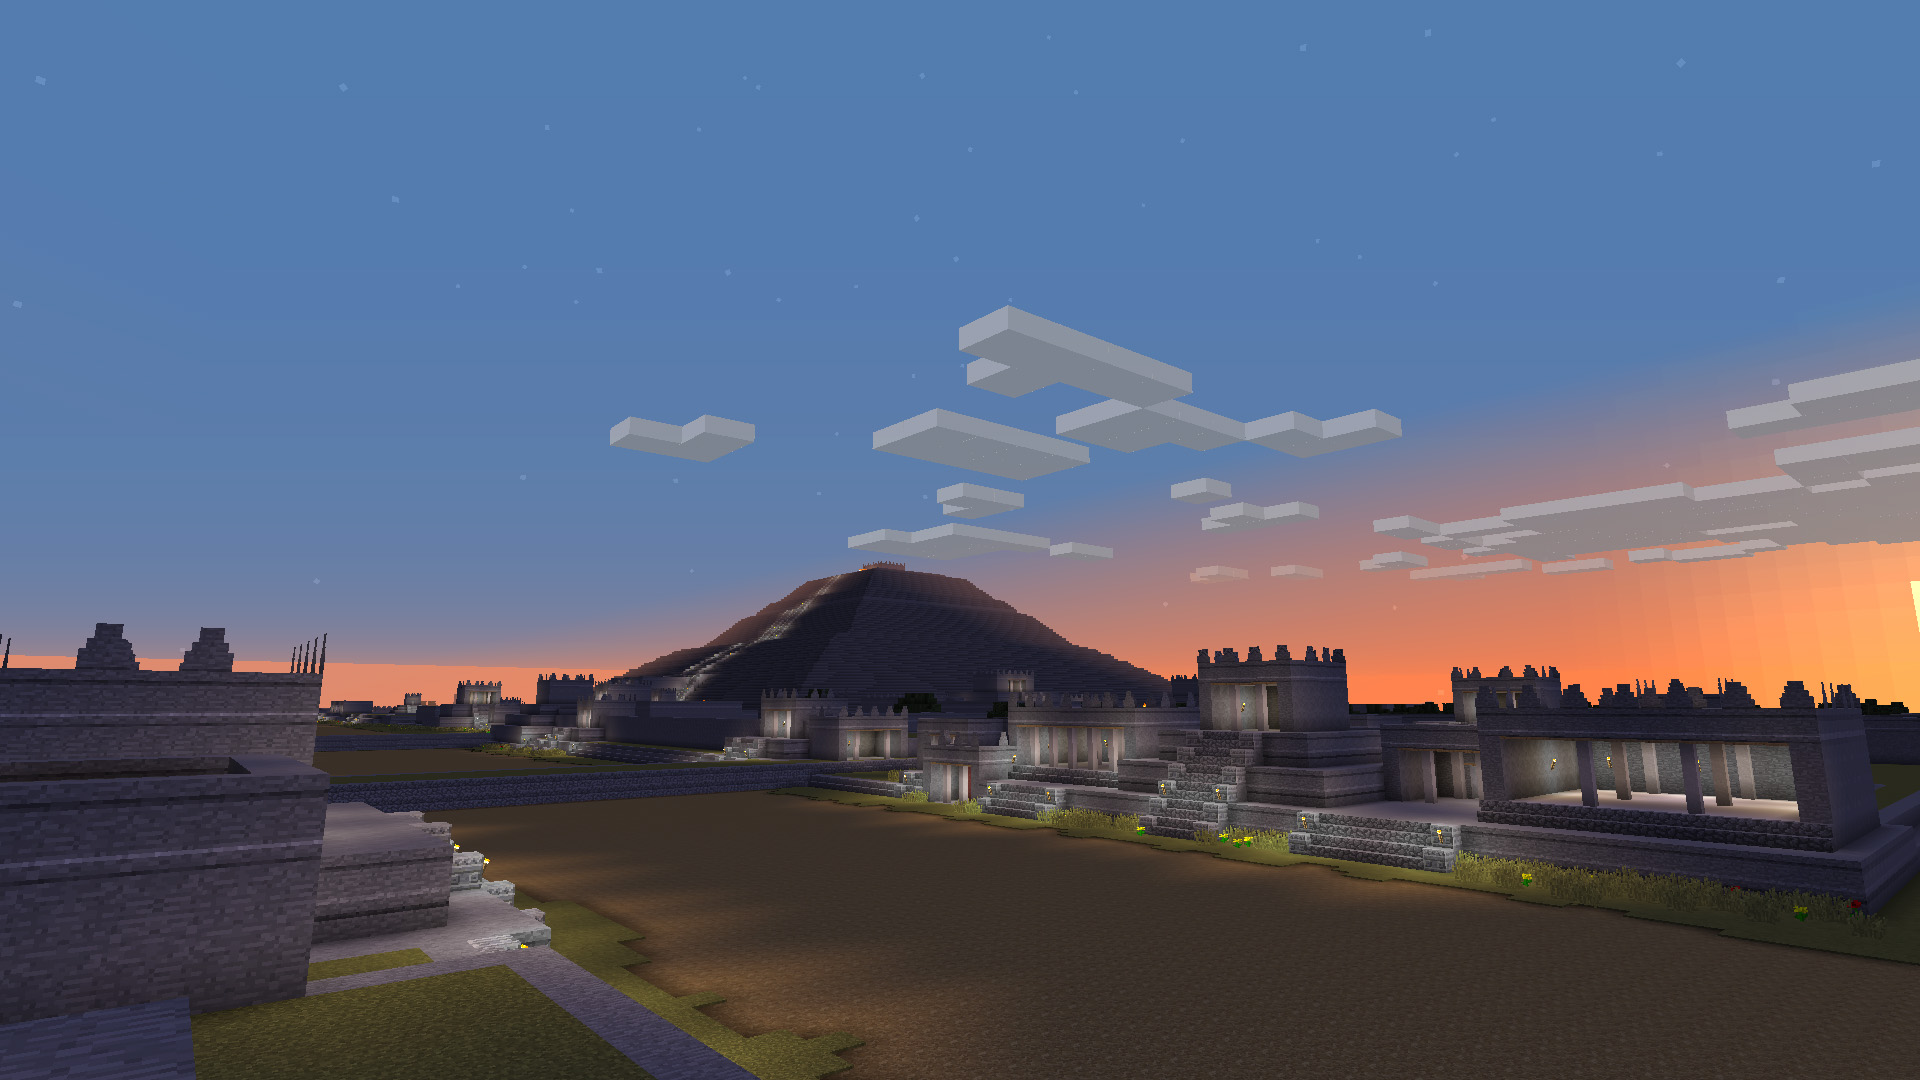 Minecraft Teotihuacan